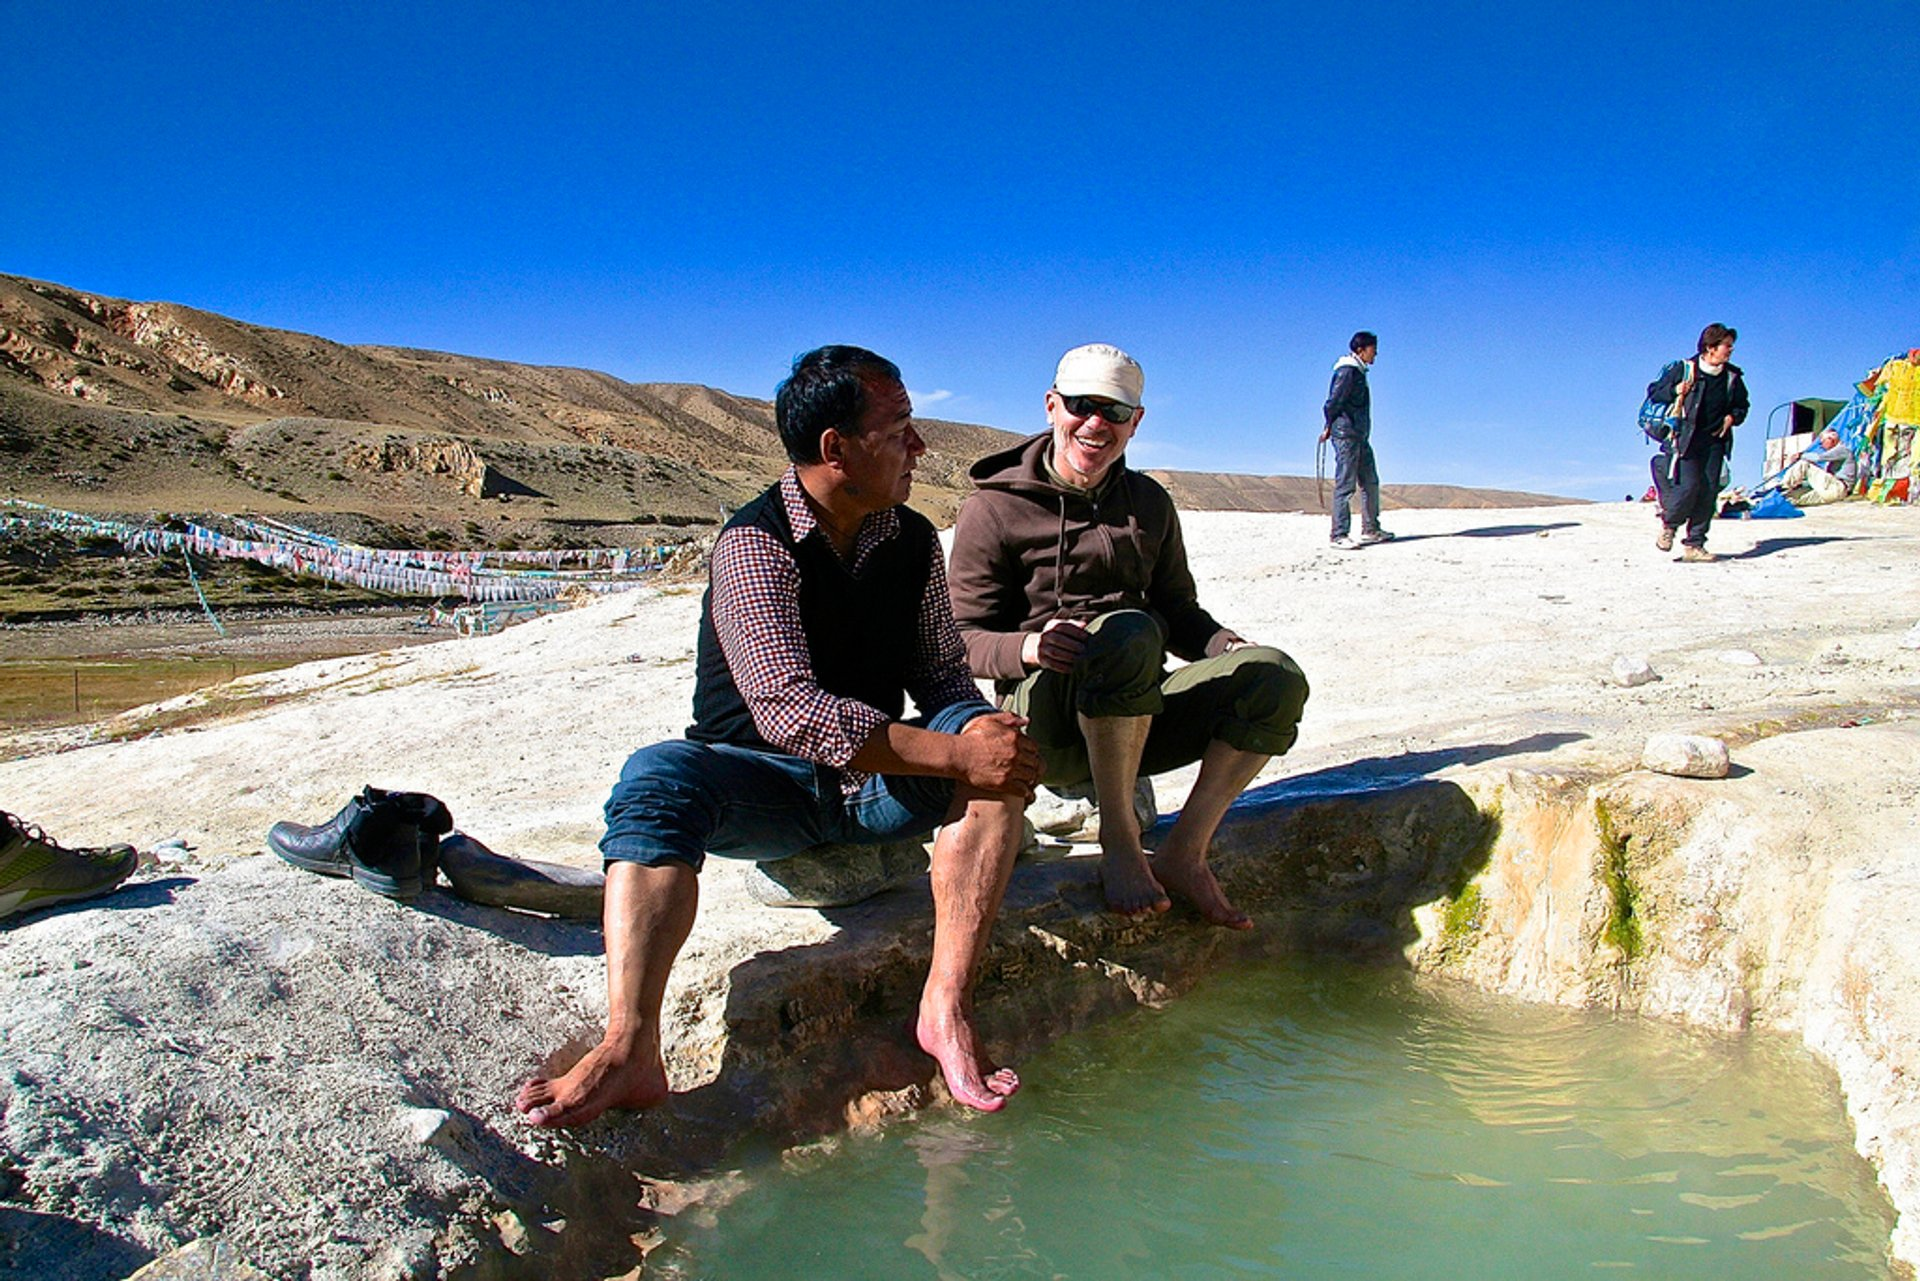 Hot spring near Mt Kailash 2020